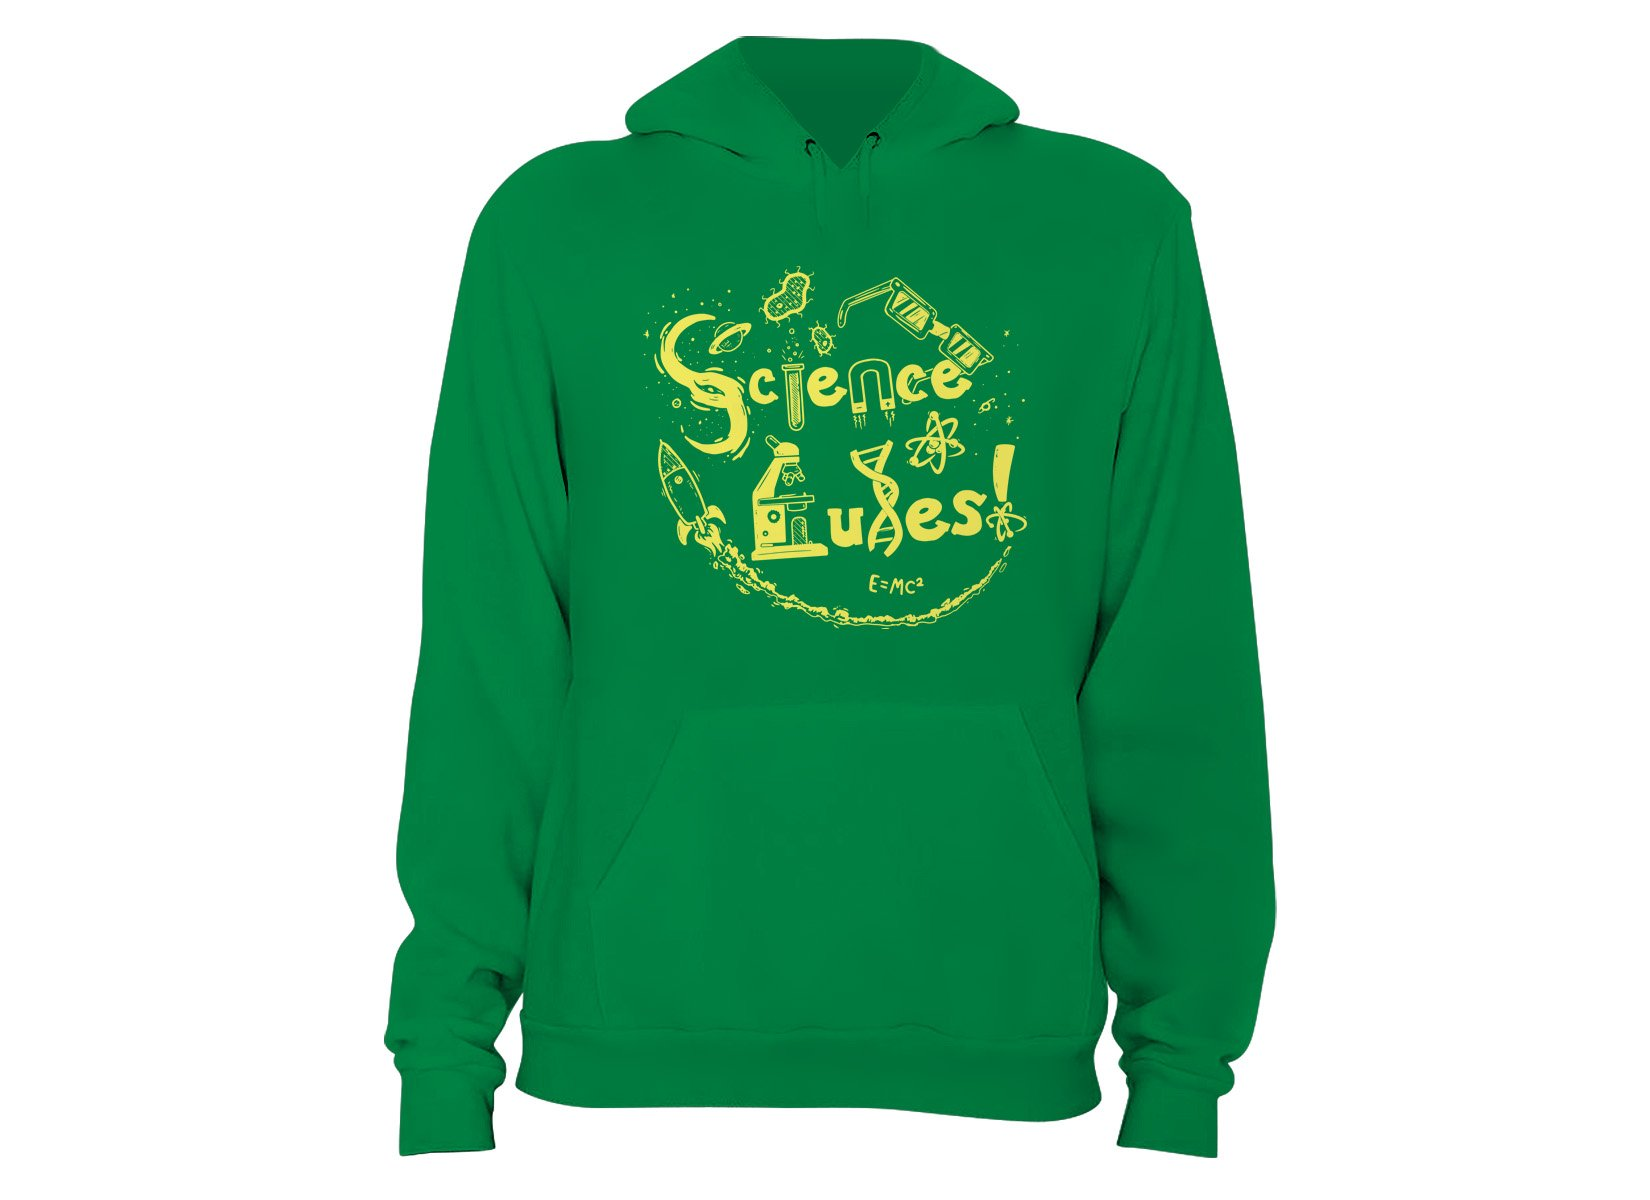 Science Rules! on Hoodie